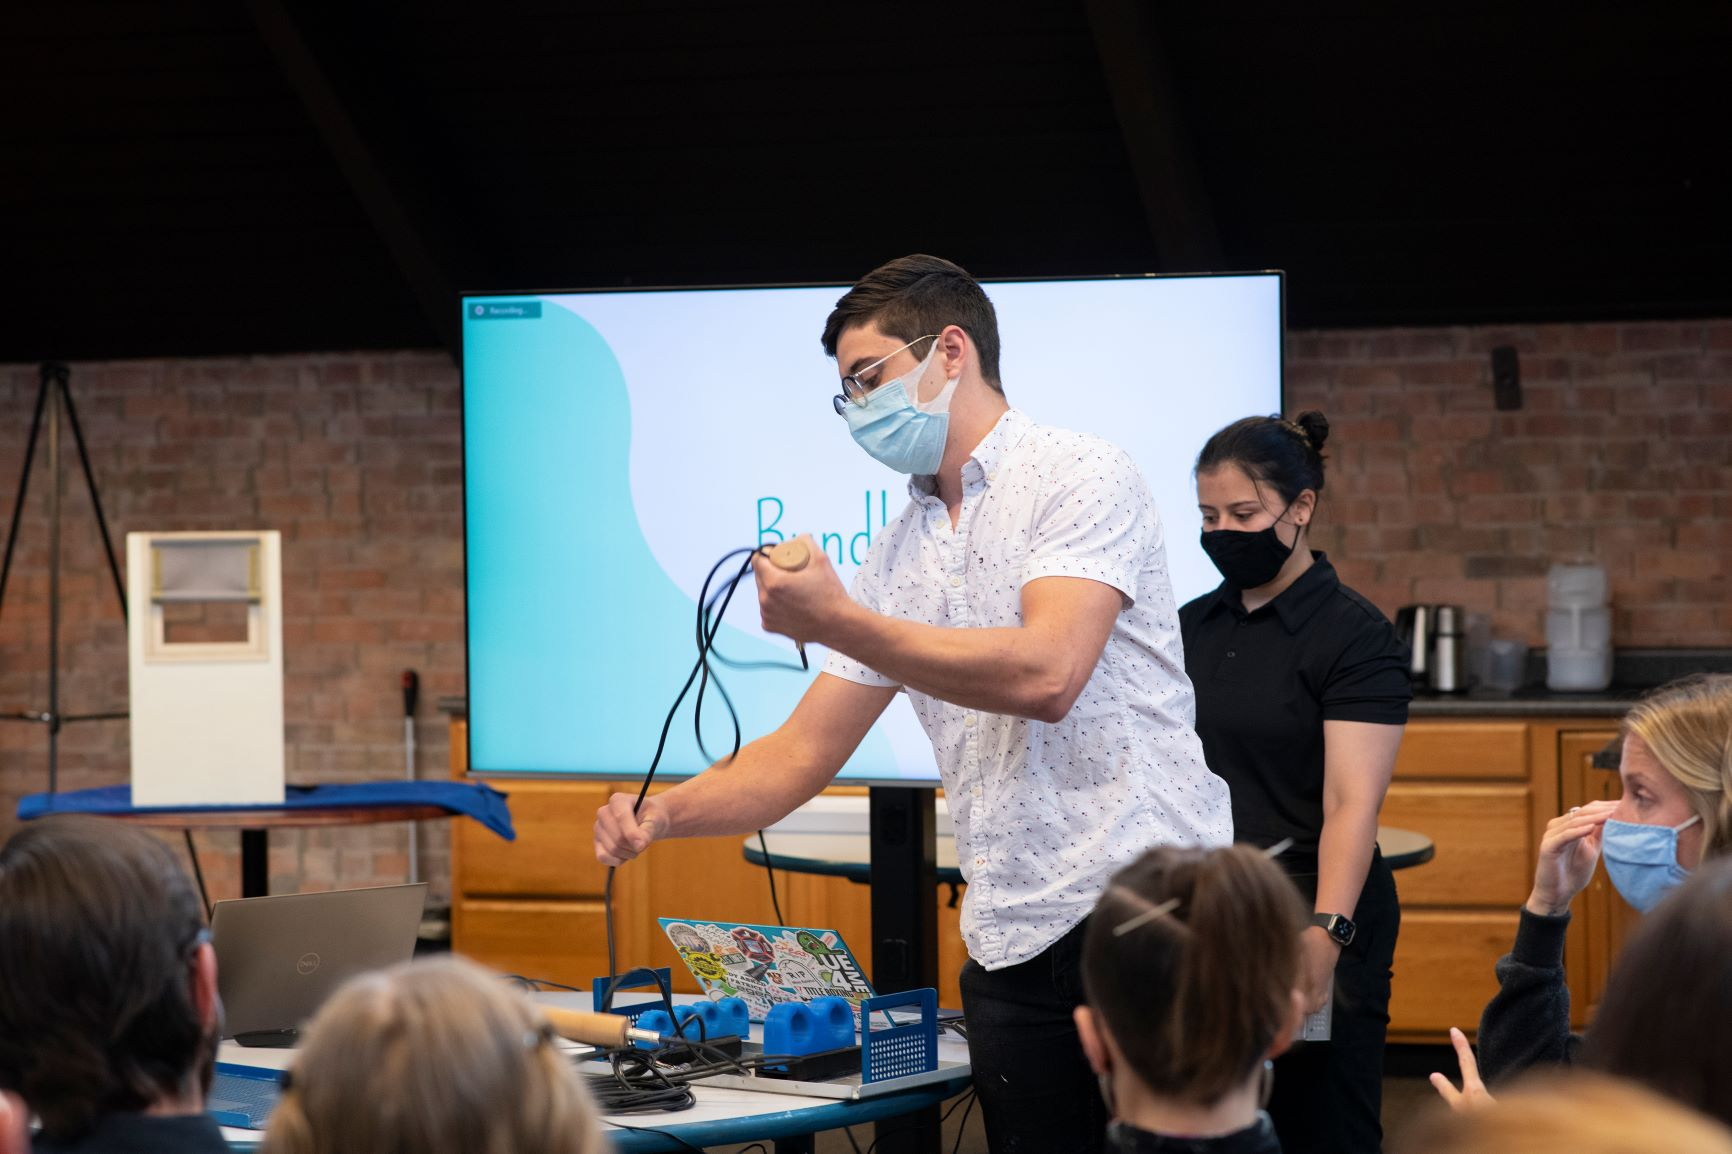 A person in a mask pulls wires from a device